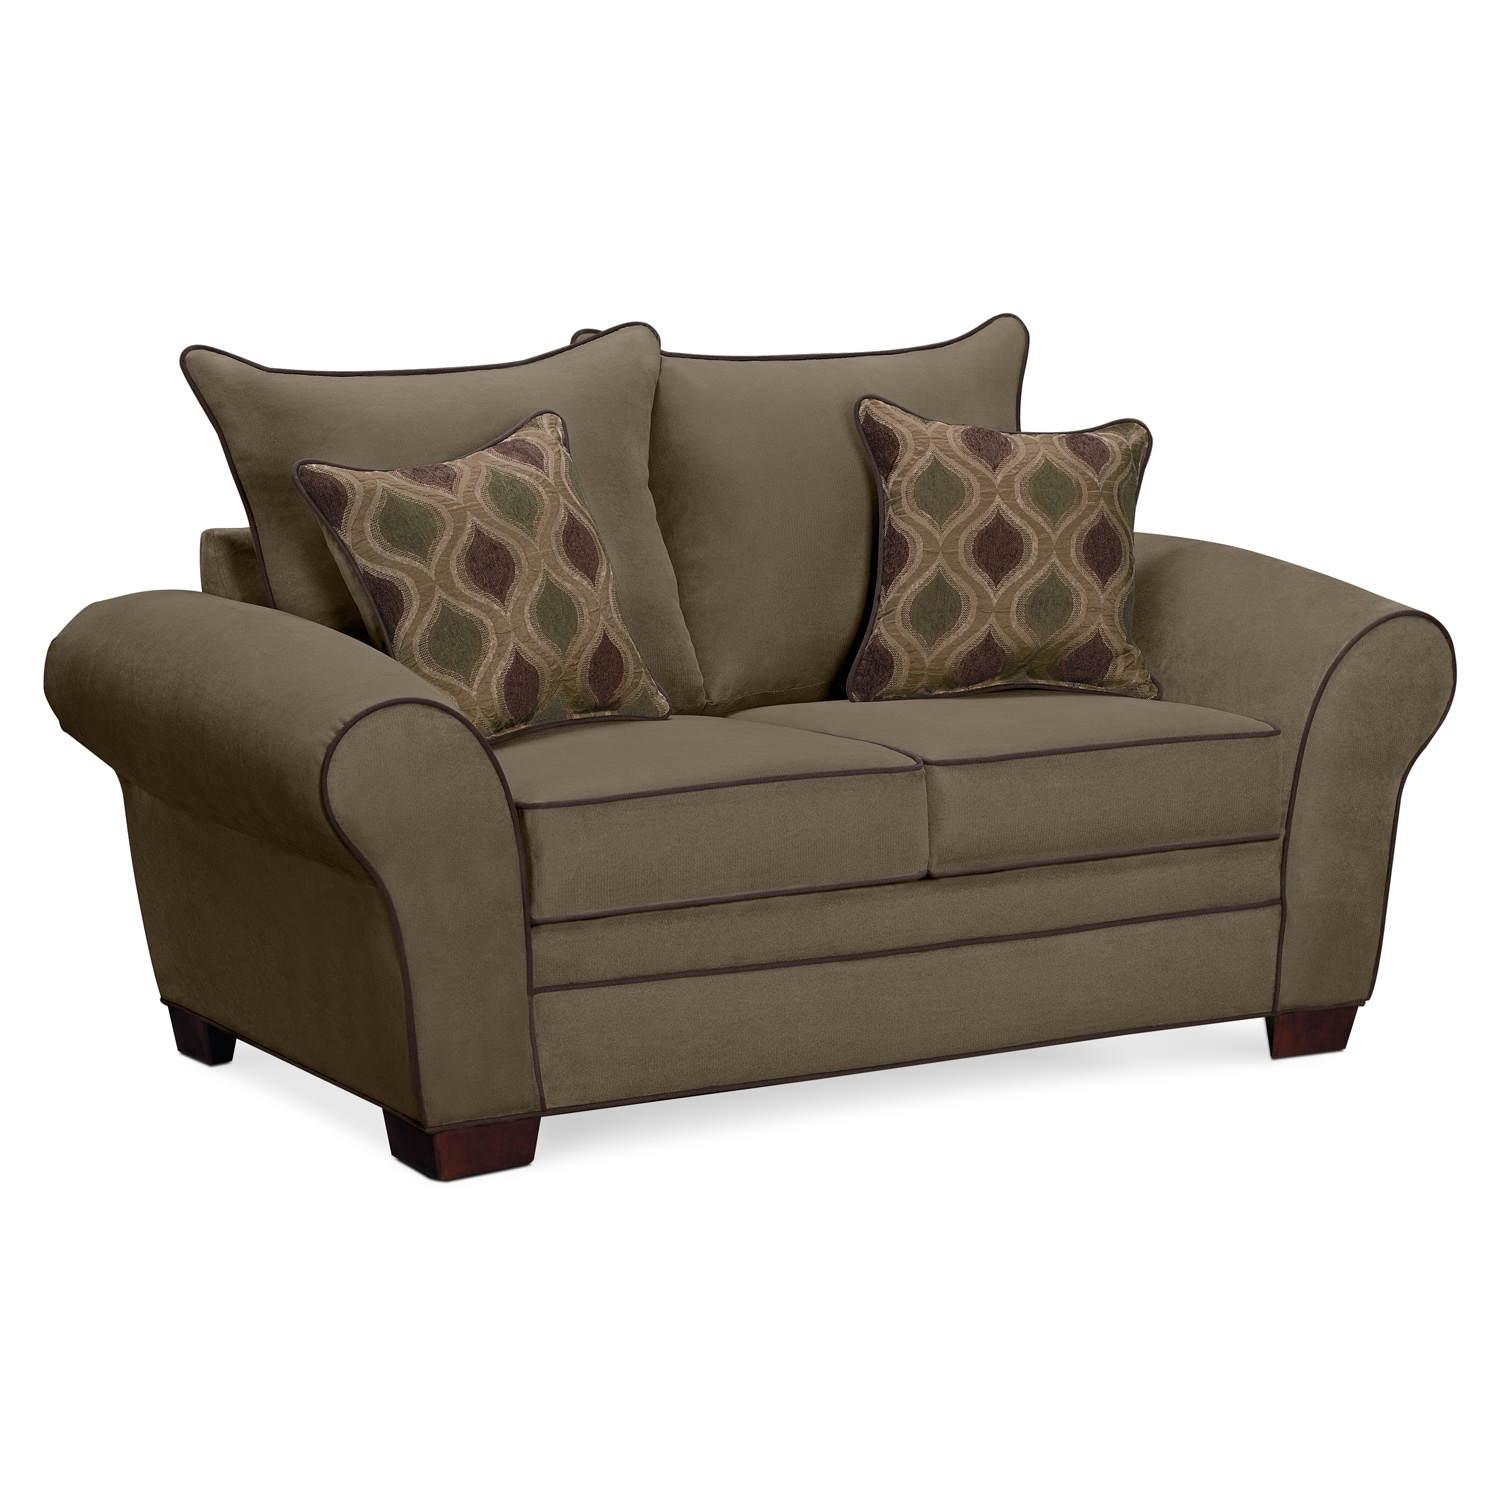 Rendezvous Sofa and Loveseat Set Olive